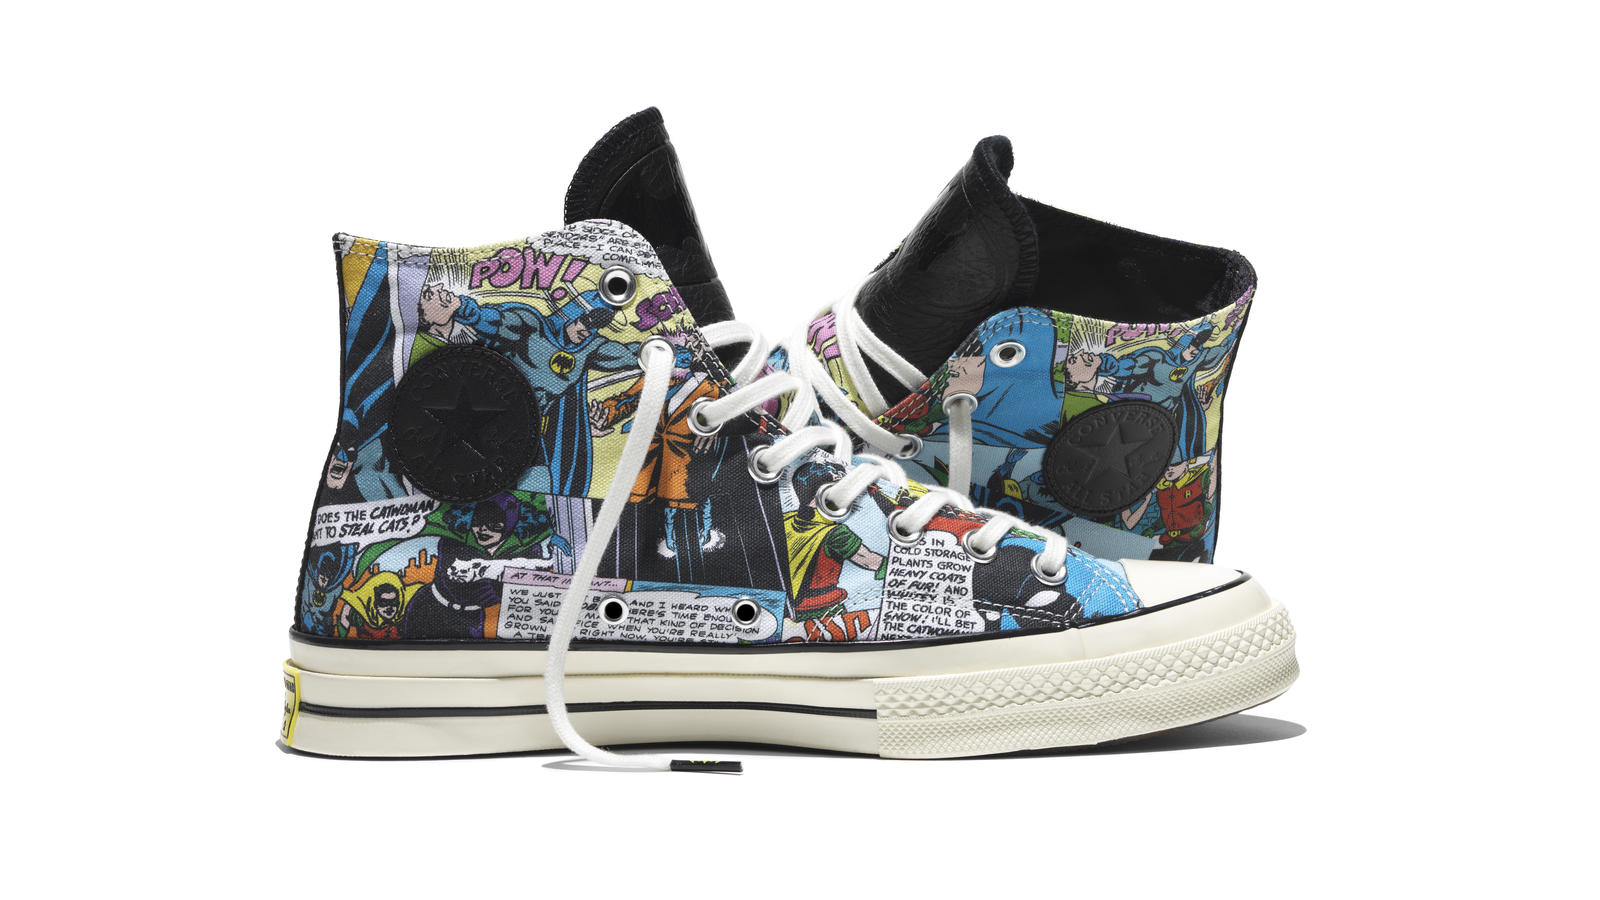 online store d5d7b 0ee5b ... clearance converse unveils chuck taylor all star 70 dc comics batman  collection nike news c36de 1ca05